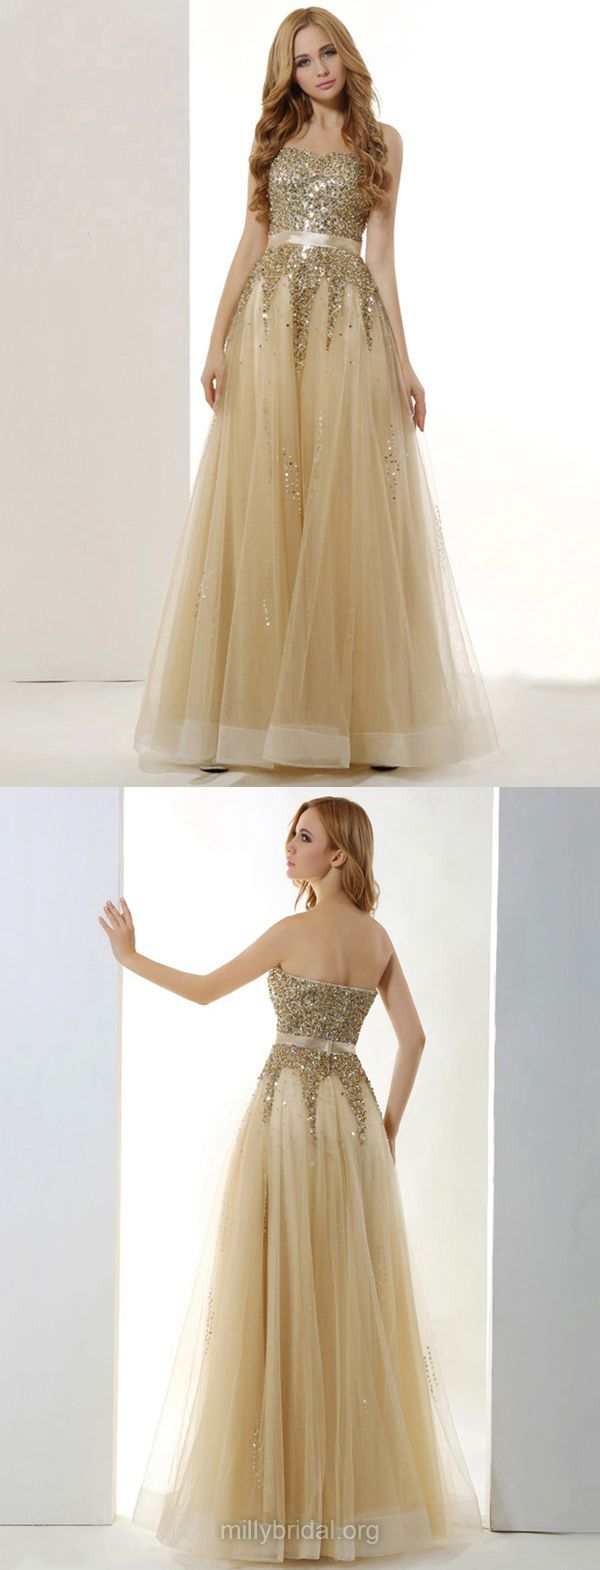 Champagne Prom Dresses Long, Yellow Prom Dresses 2018, A-line Prom Dresses Sweetheart, Tulle Prom Dresses with Sashes / Ribbons Modest